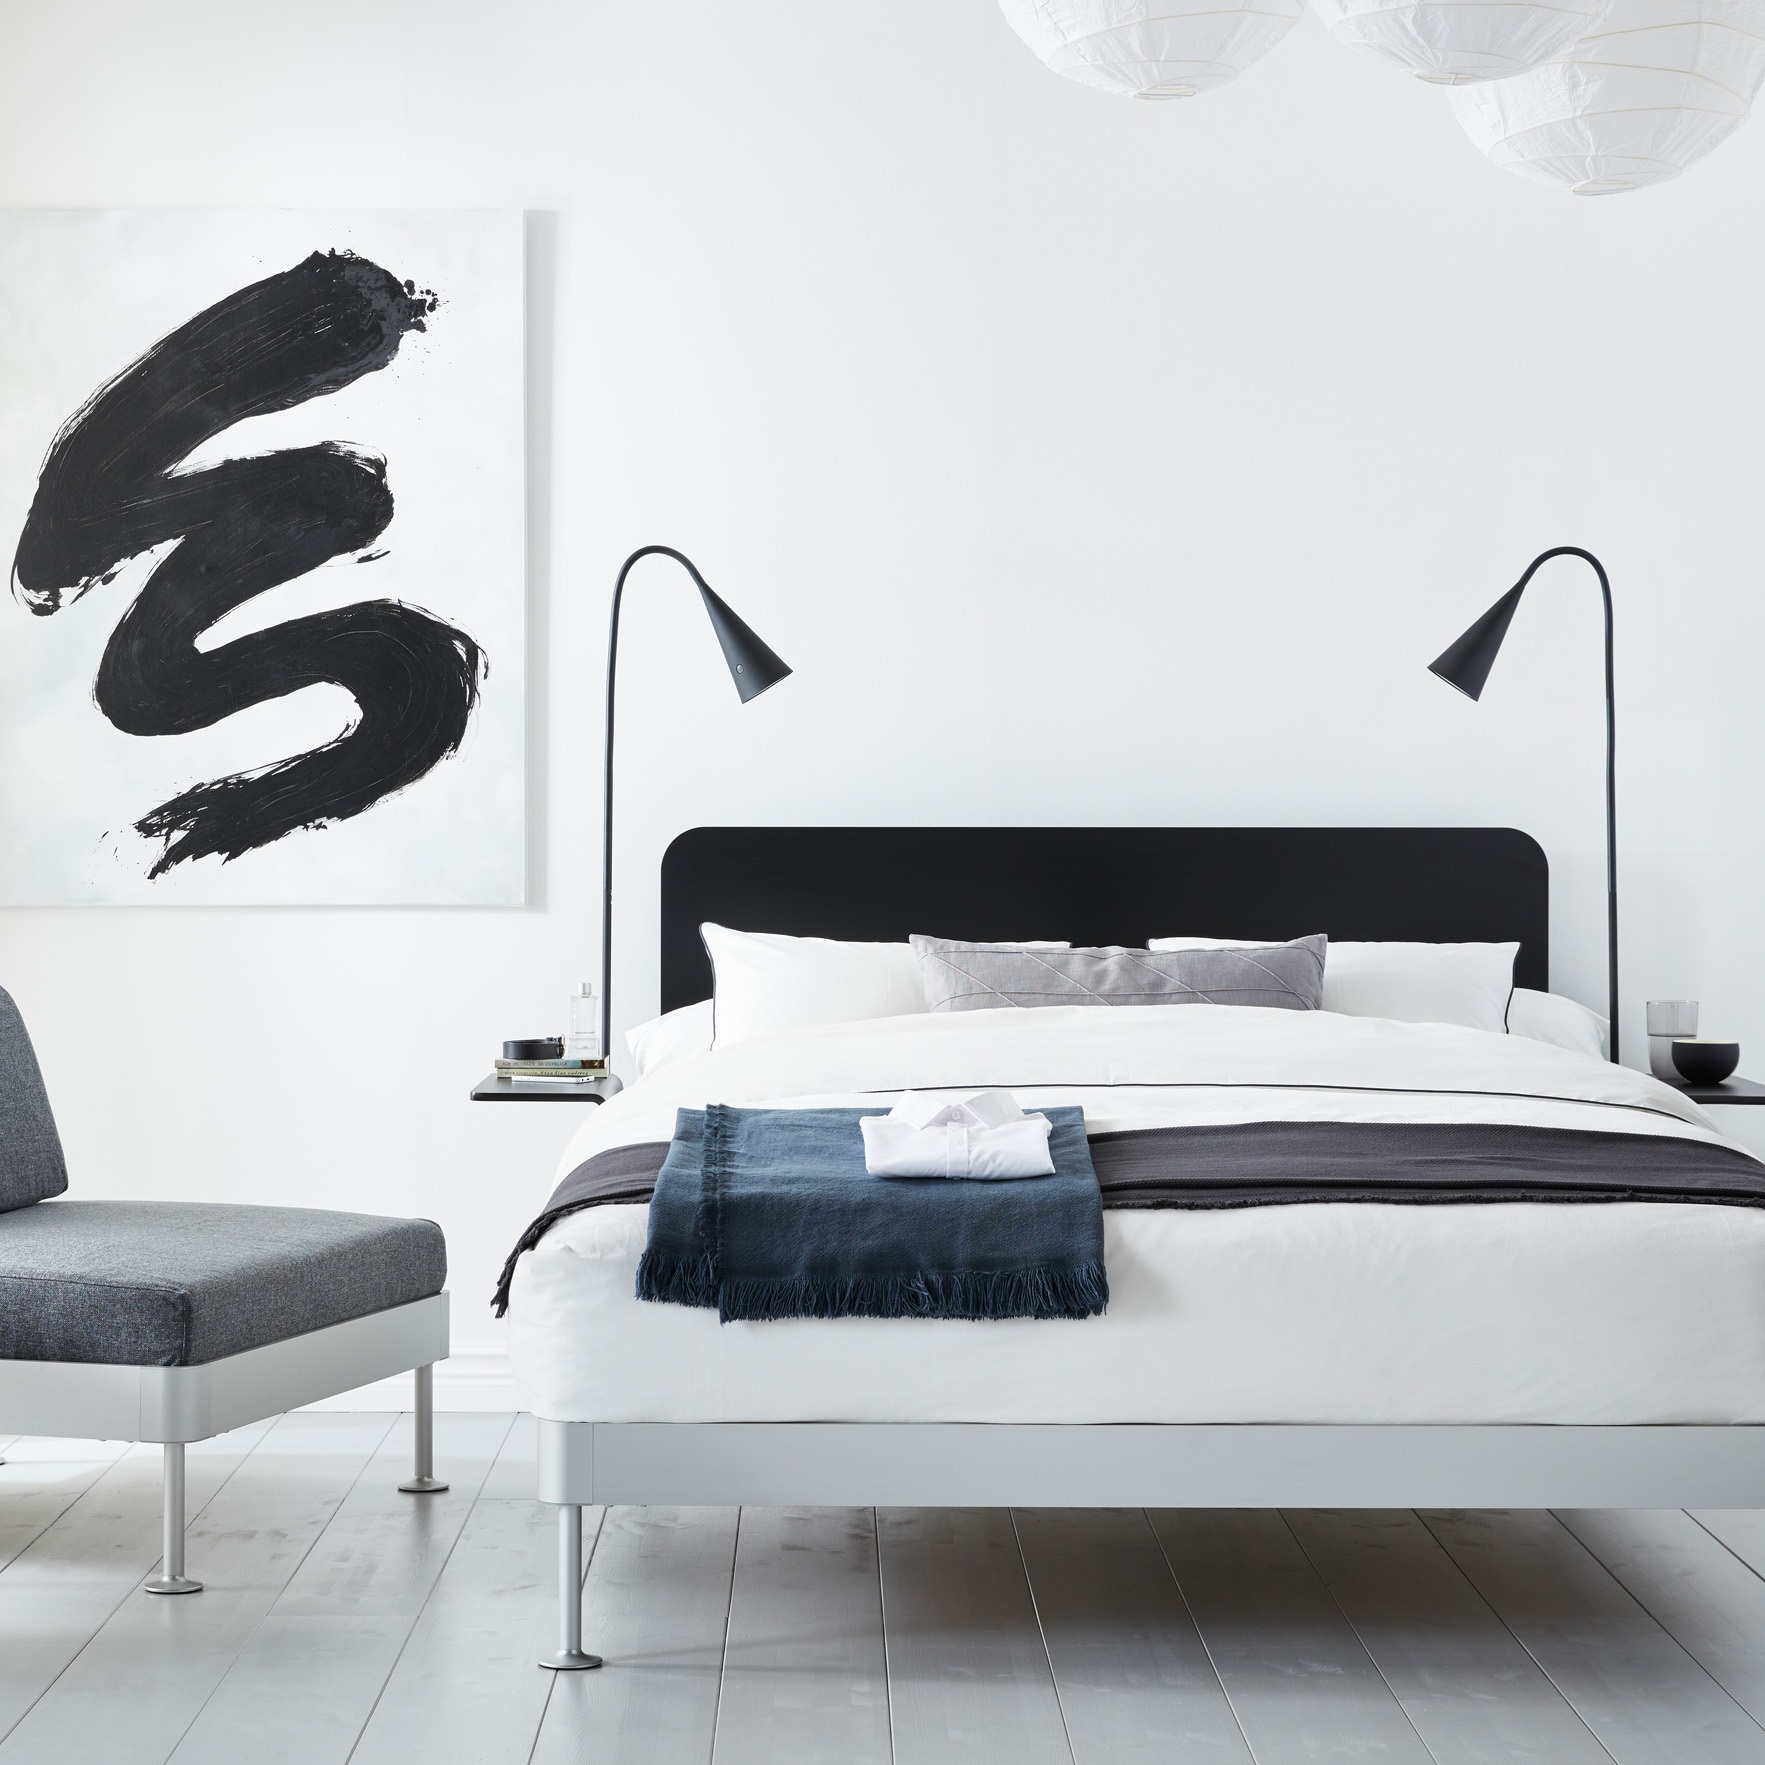 Ikea Tom Dixon Delaktig bed frame with black headboard and lamps